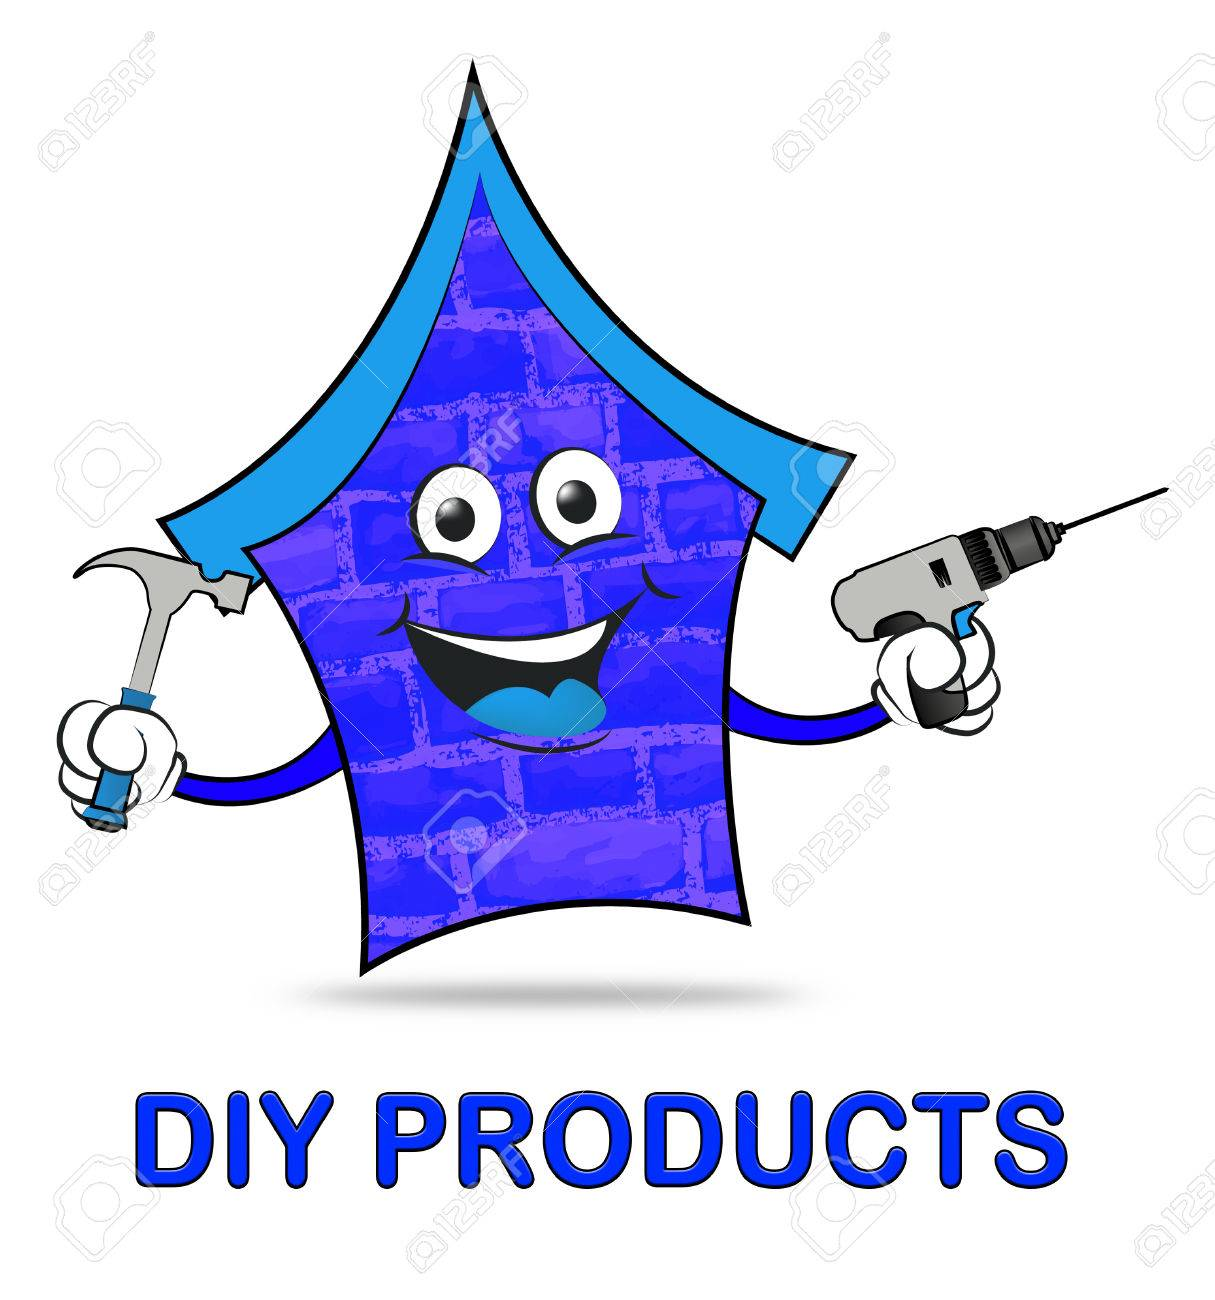 Diy products meaning do it yourself and real estate stock photo diy products meaning do it yourself and real estate stock photo 63881980 solutioingenieria Gallery